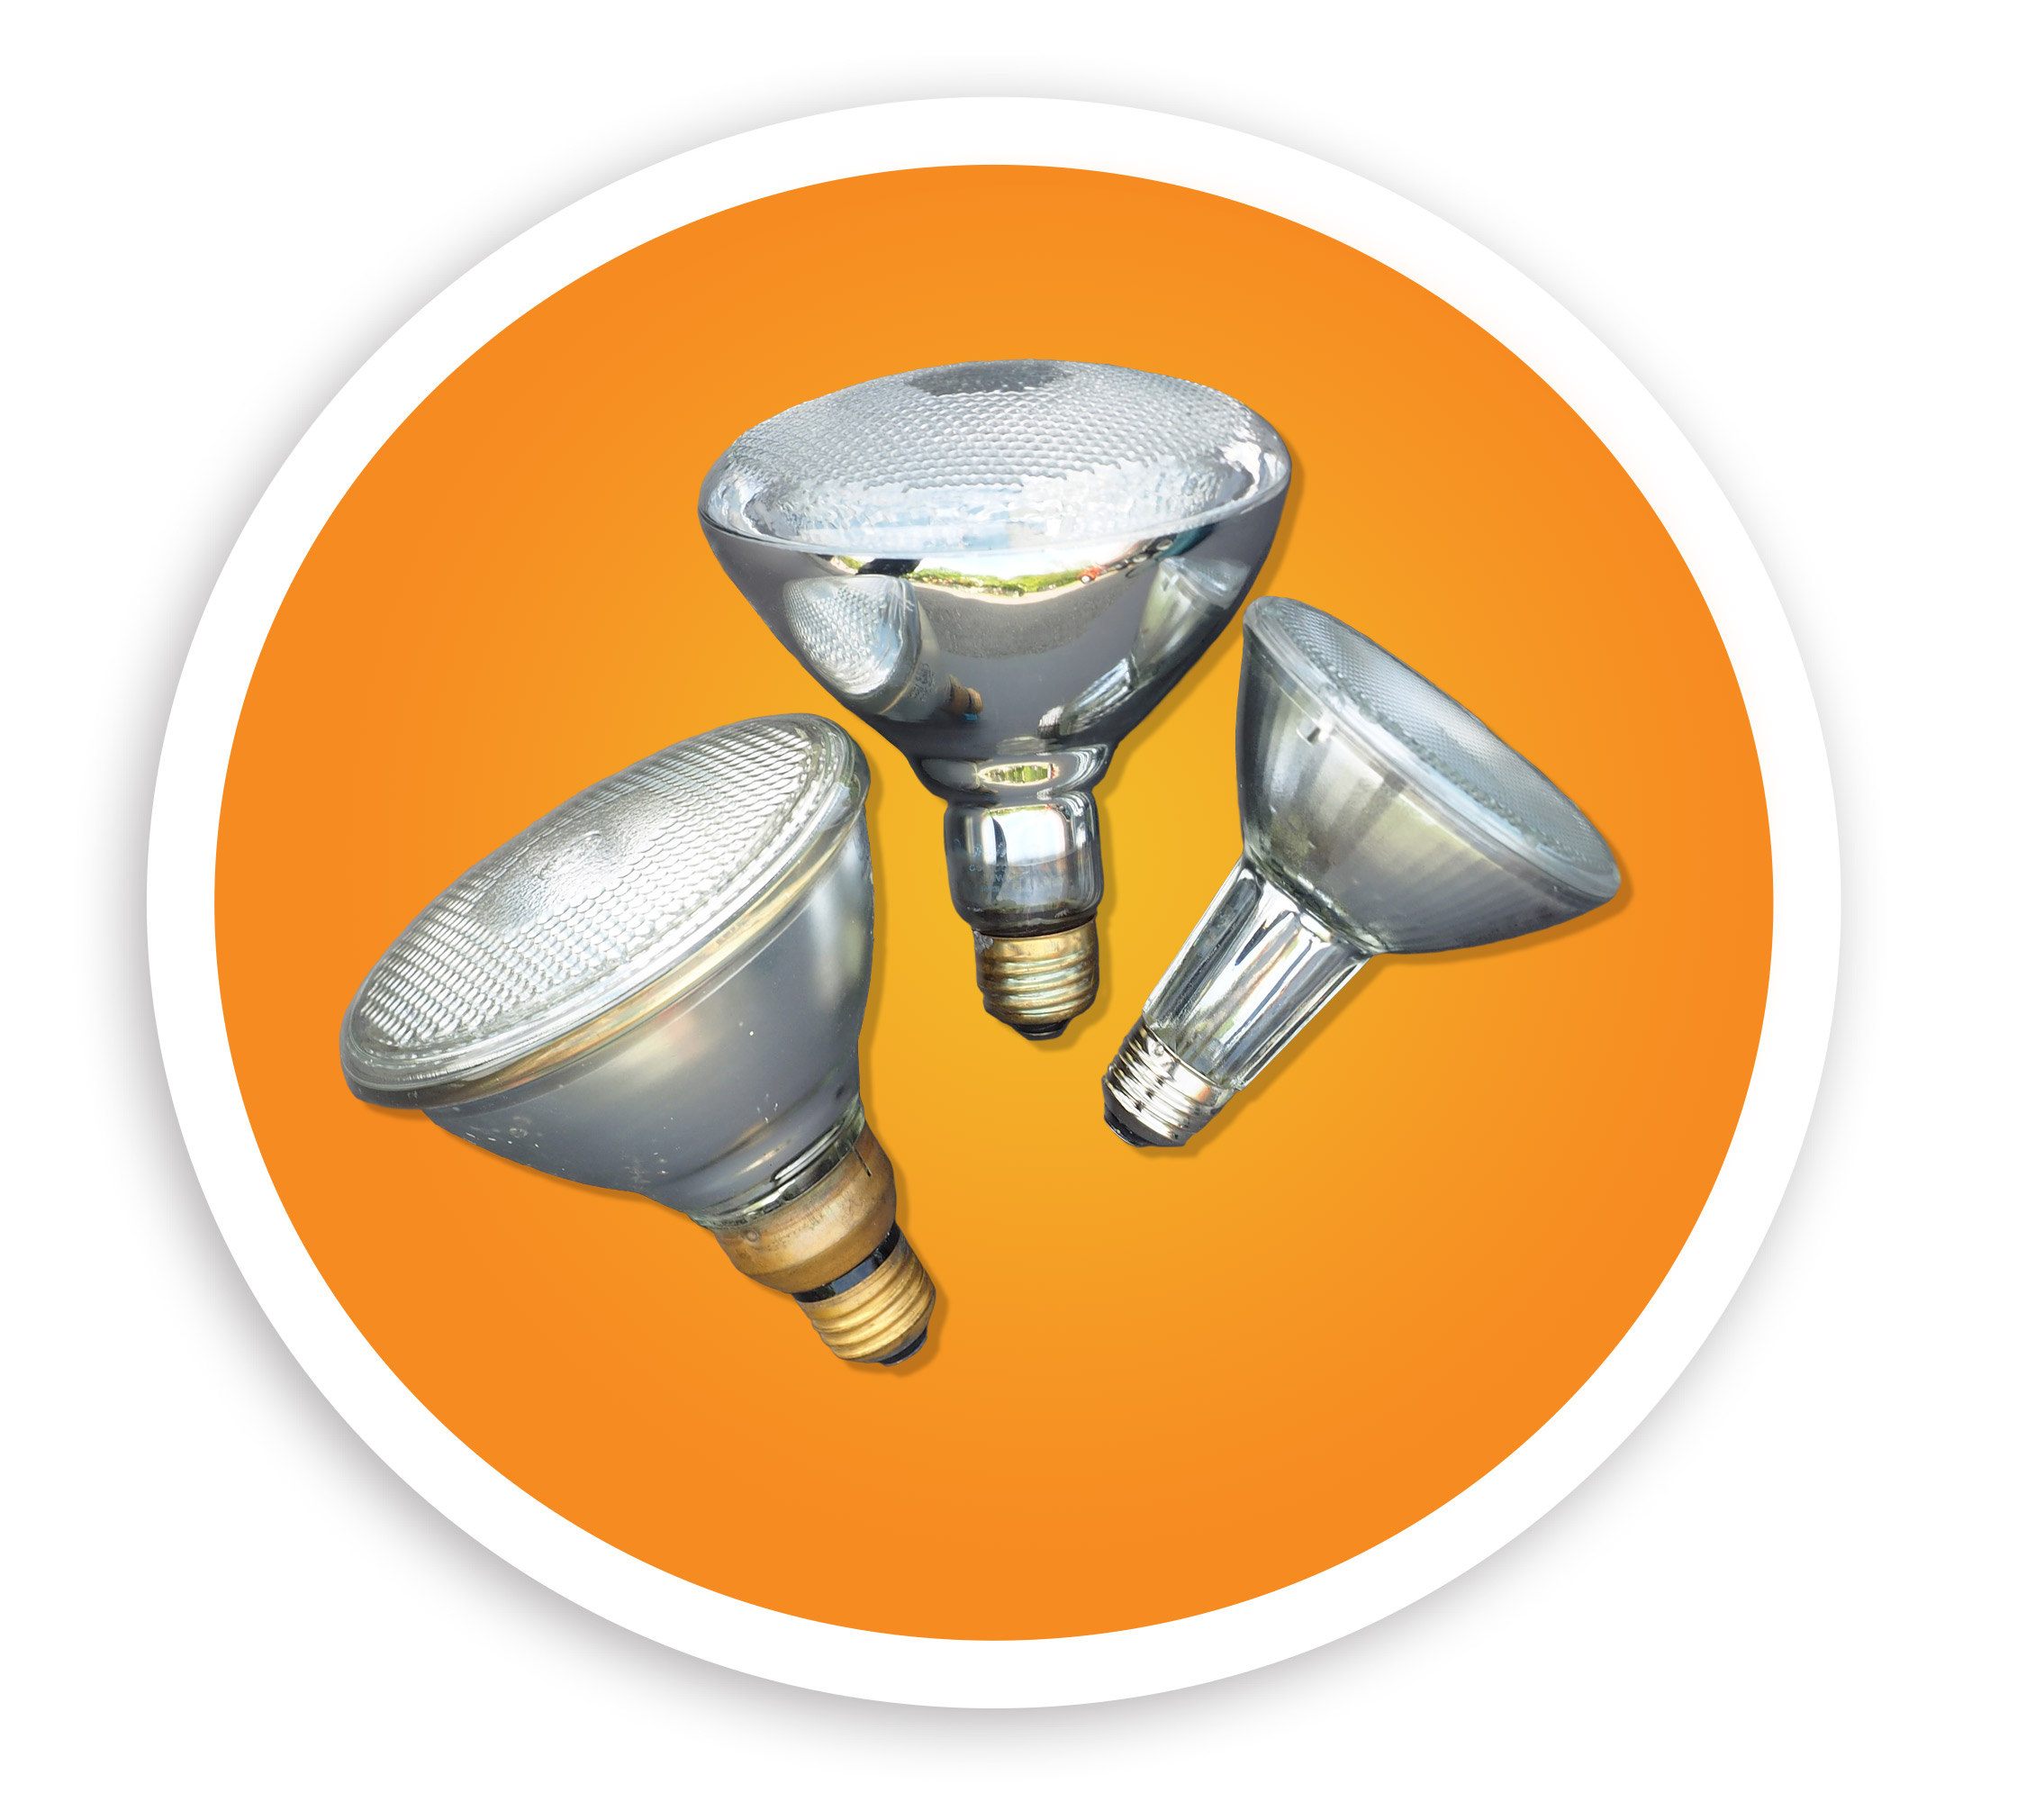 Picture of 3 different PAR flood lamps. NLR recycles PAR flood and other lamps.